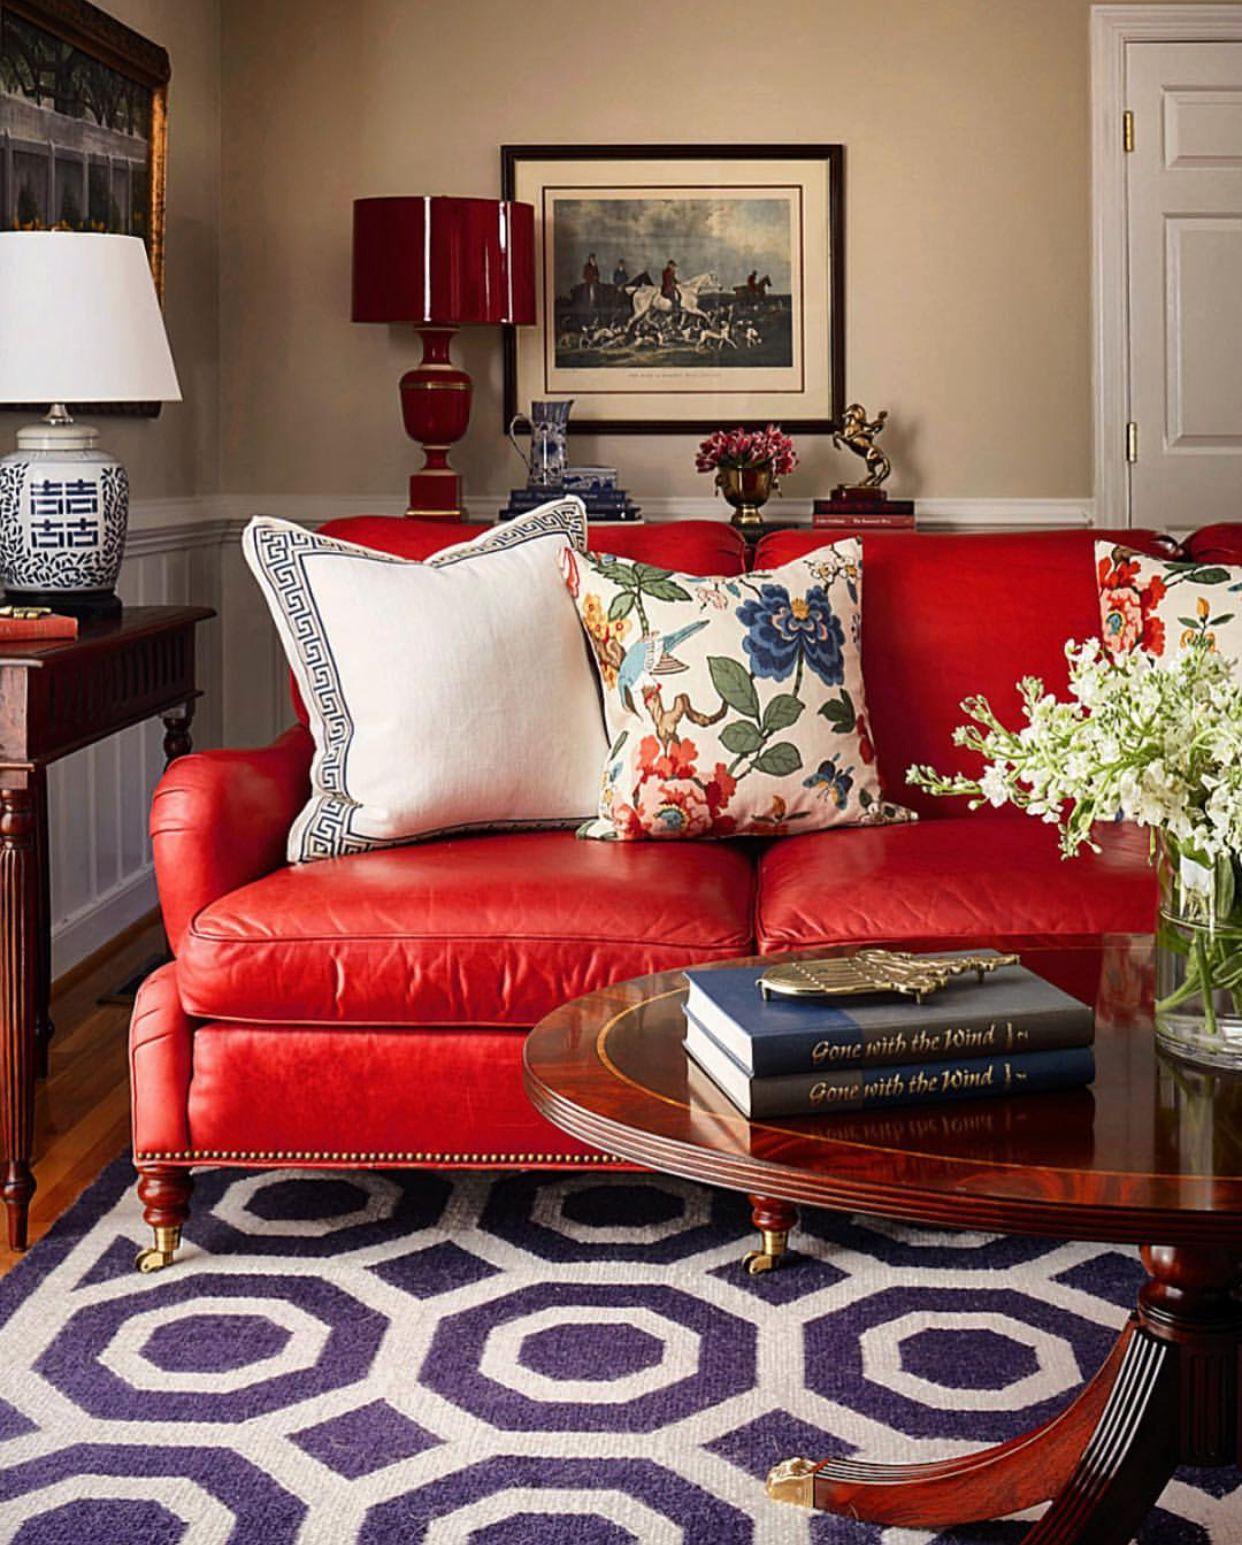 Pin By Melody Mehrabi On Home Decoration Red Sofa Living Room